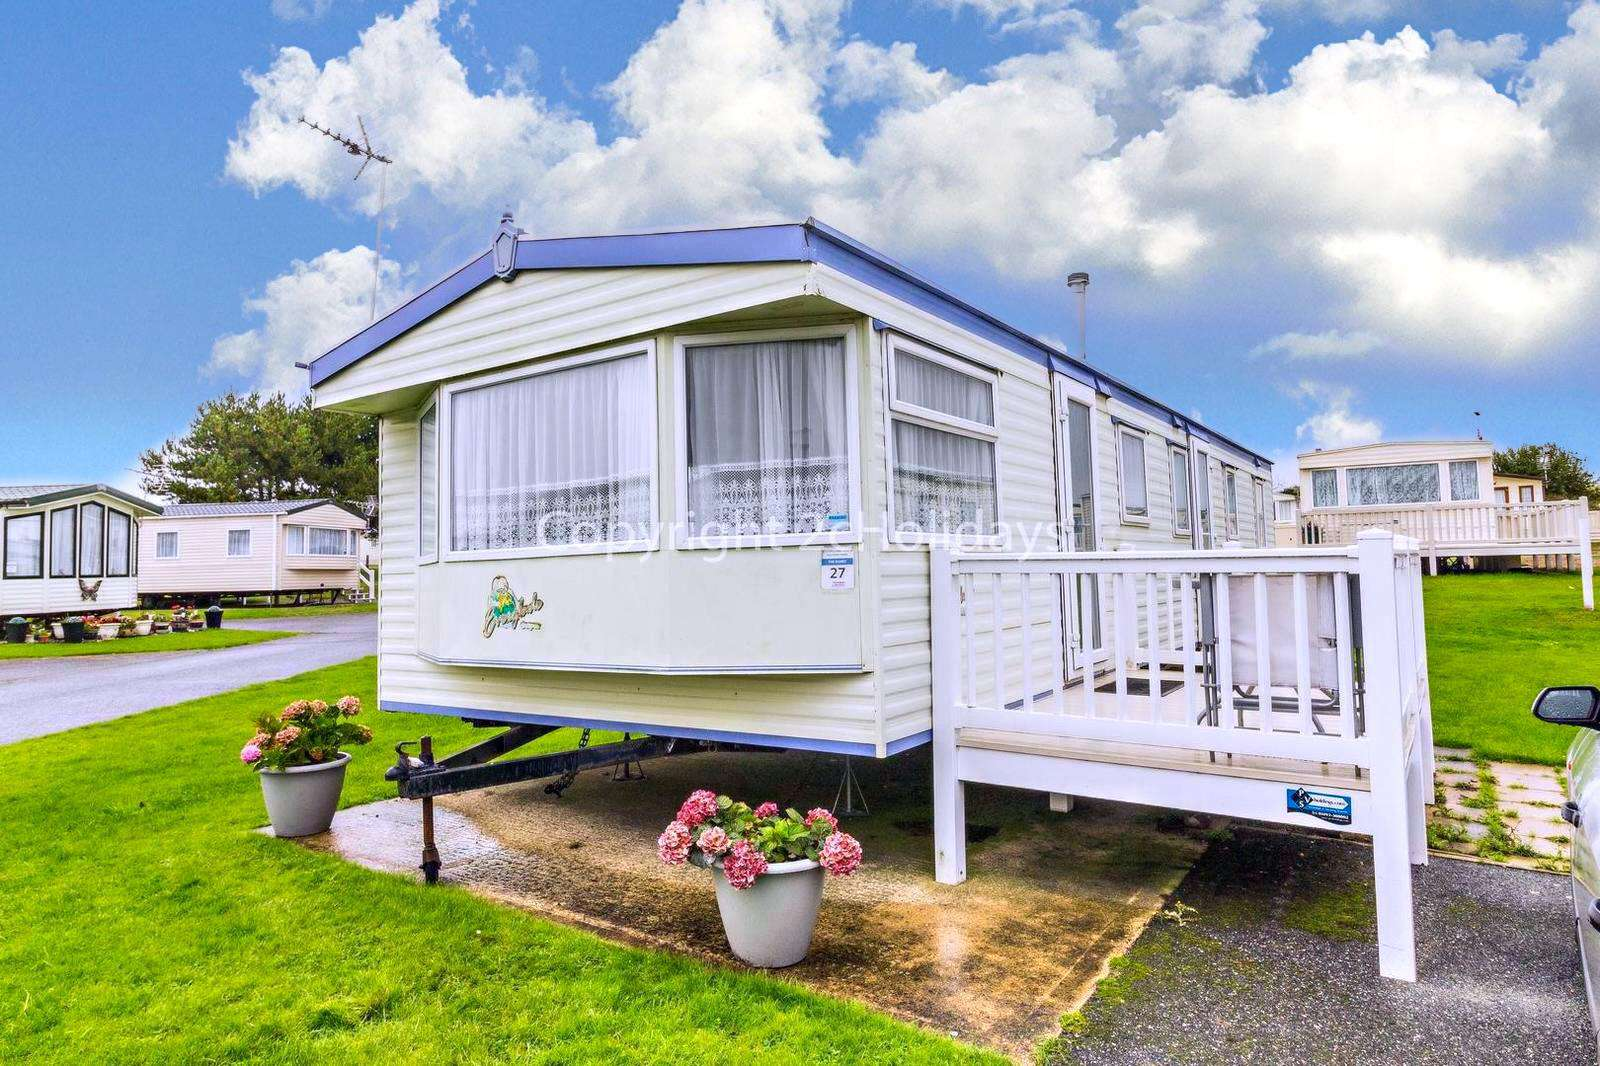 Great accommodation in an excellent location, only a short walk from the gorgeous beach!